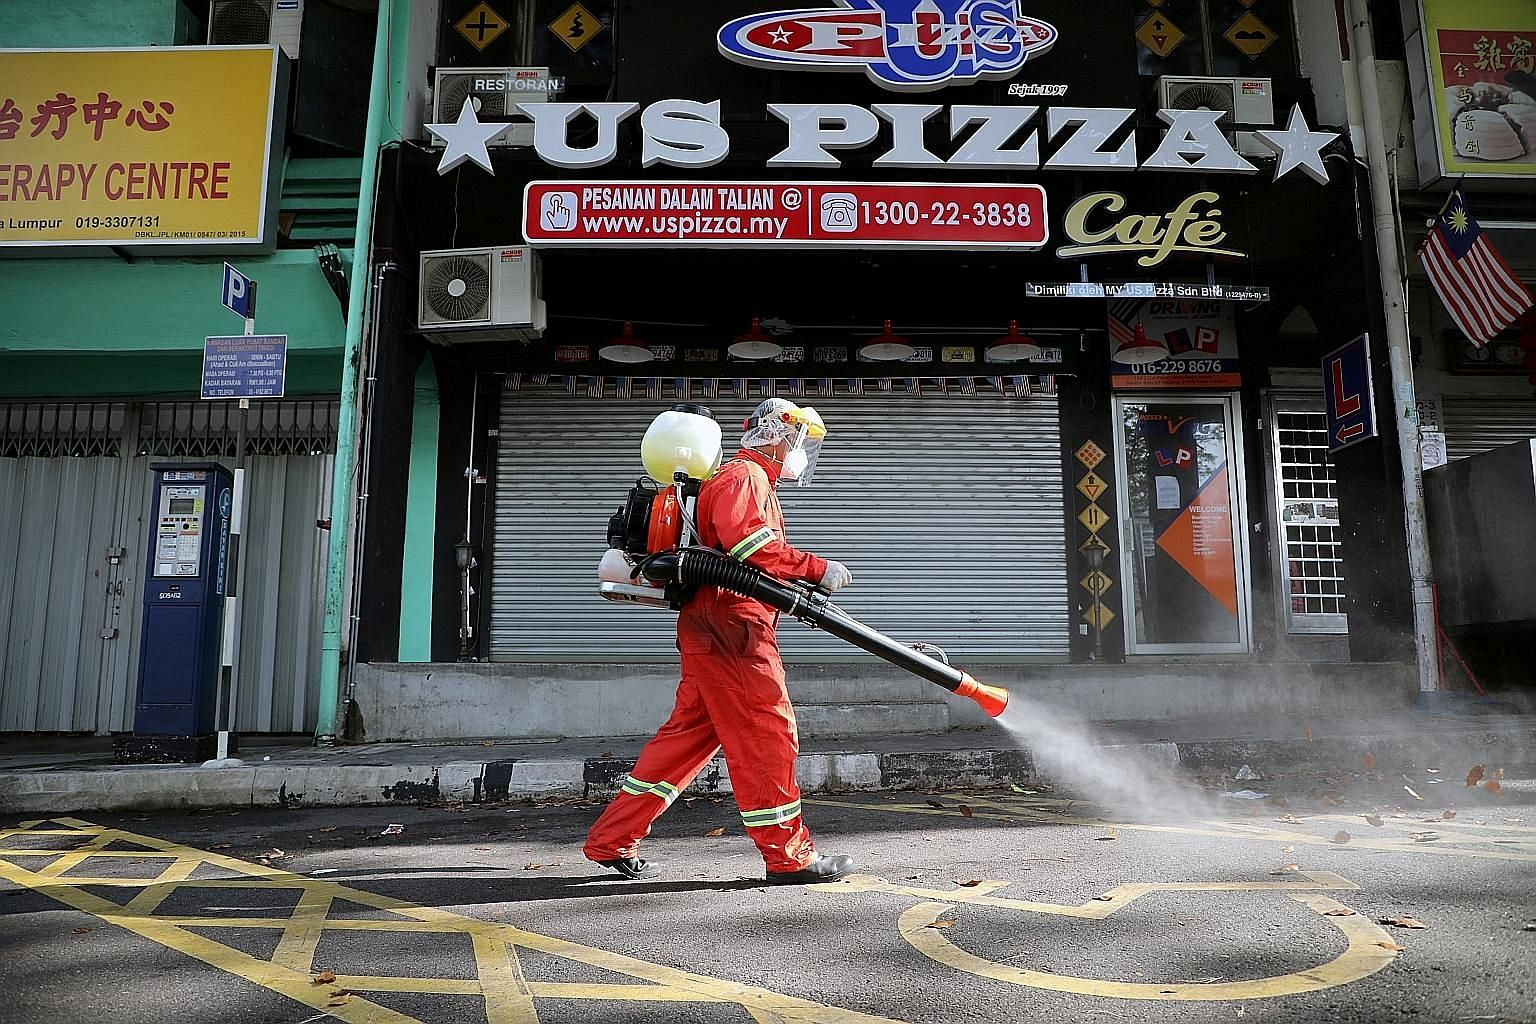 A worker spraying disinfectant on a street in Kuala Lumpur yesterday, while the movement control order is in place due to the coronavirus outbreak. Malaysia on Friday unveiled a RM250 billion (S$83.4 billion) stimulus package to cushion the country's